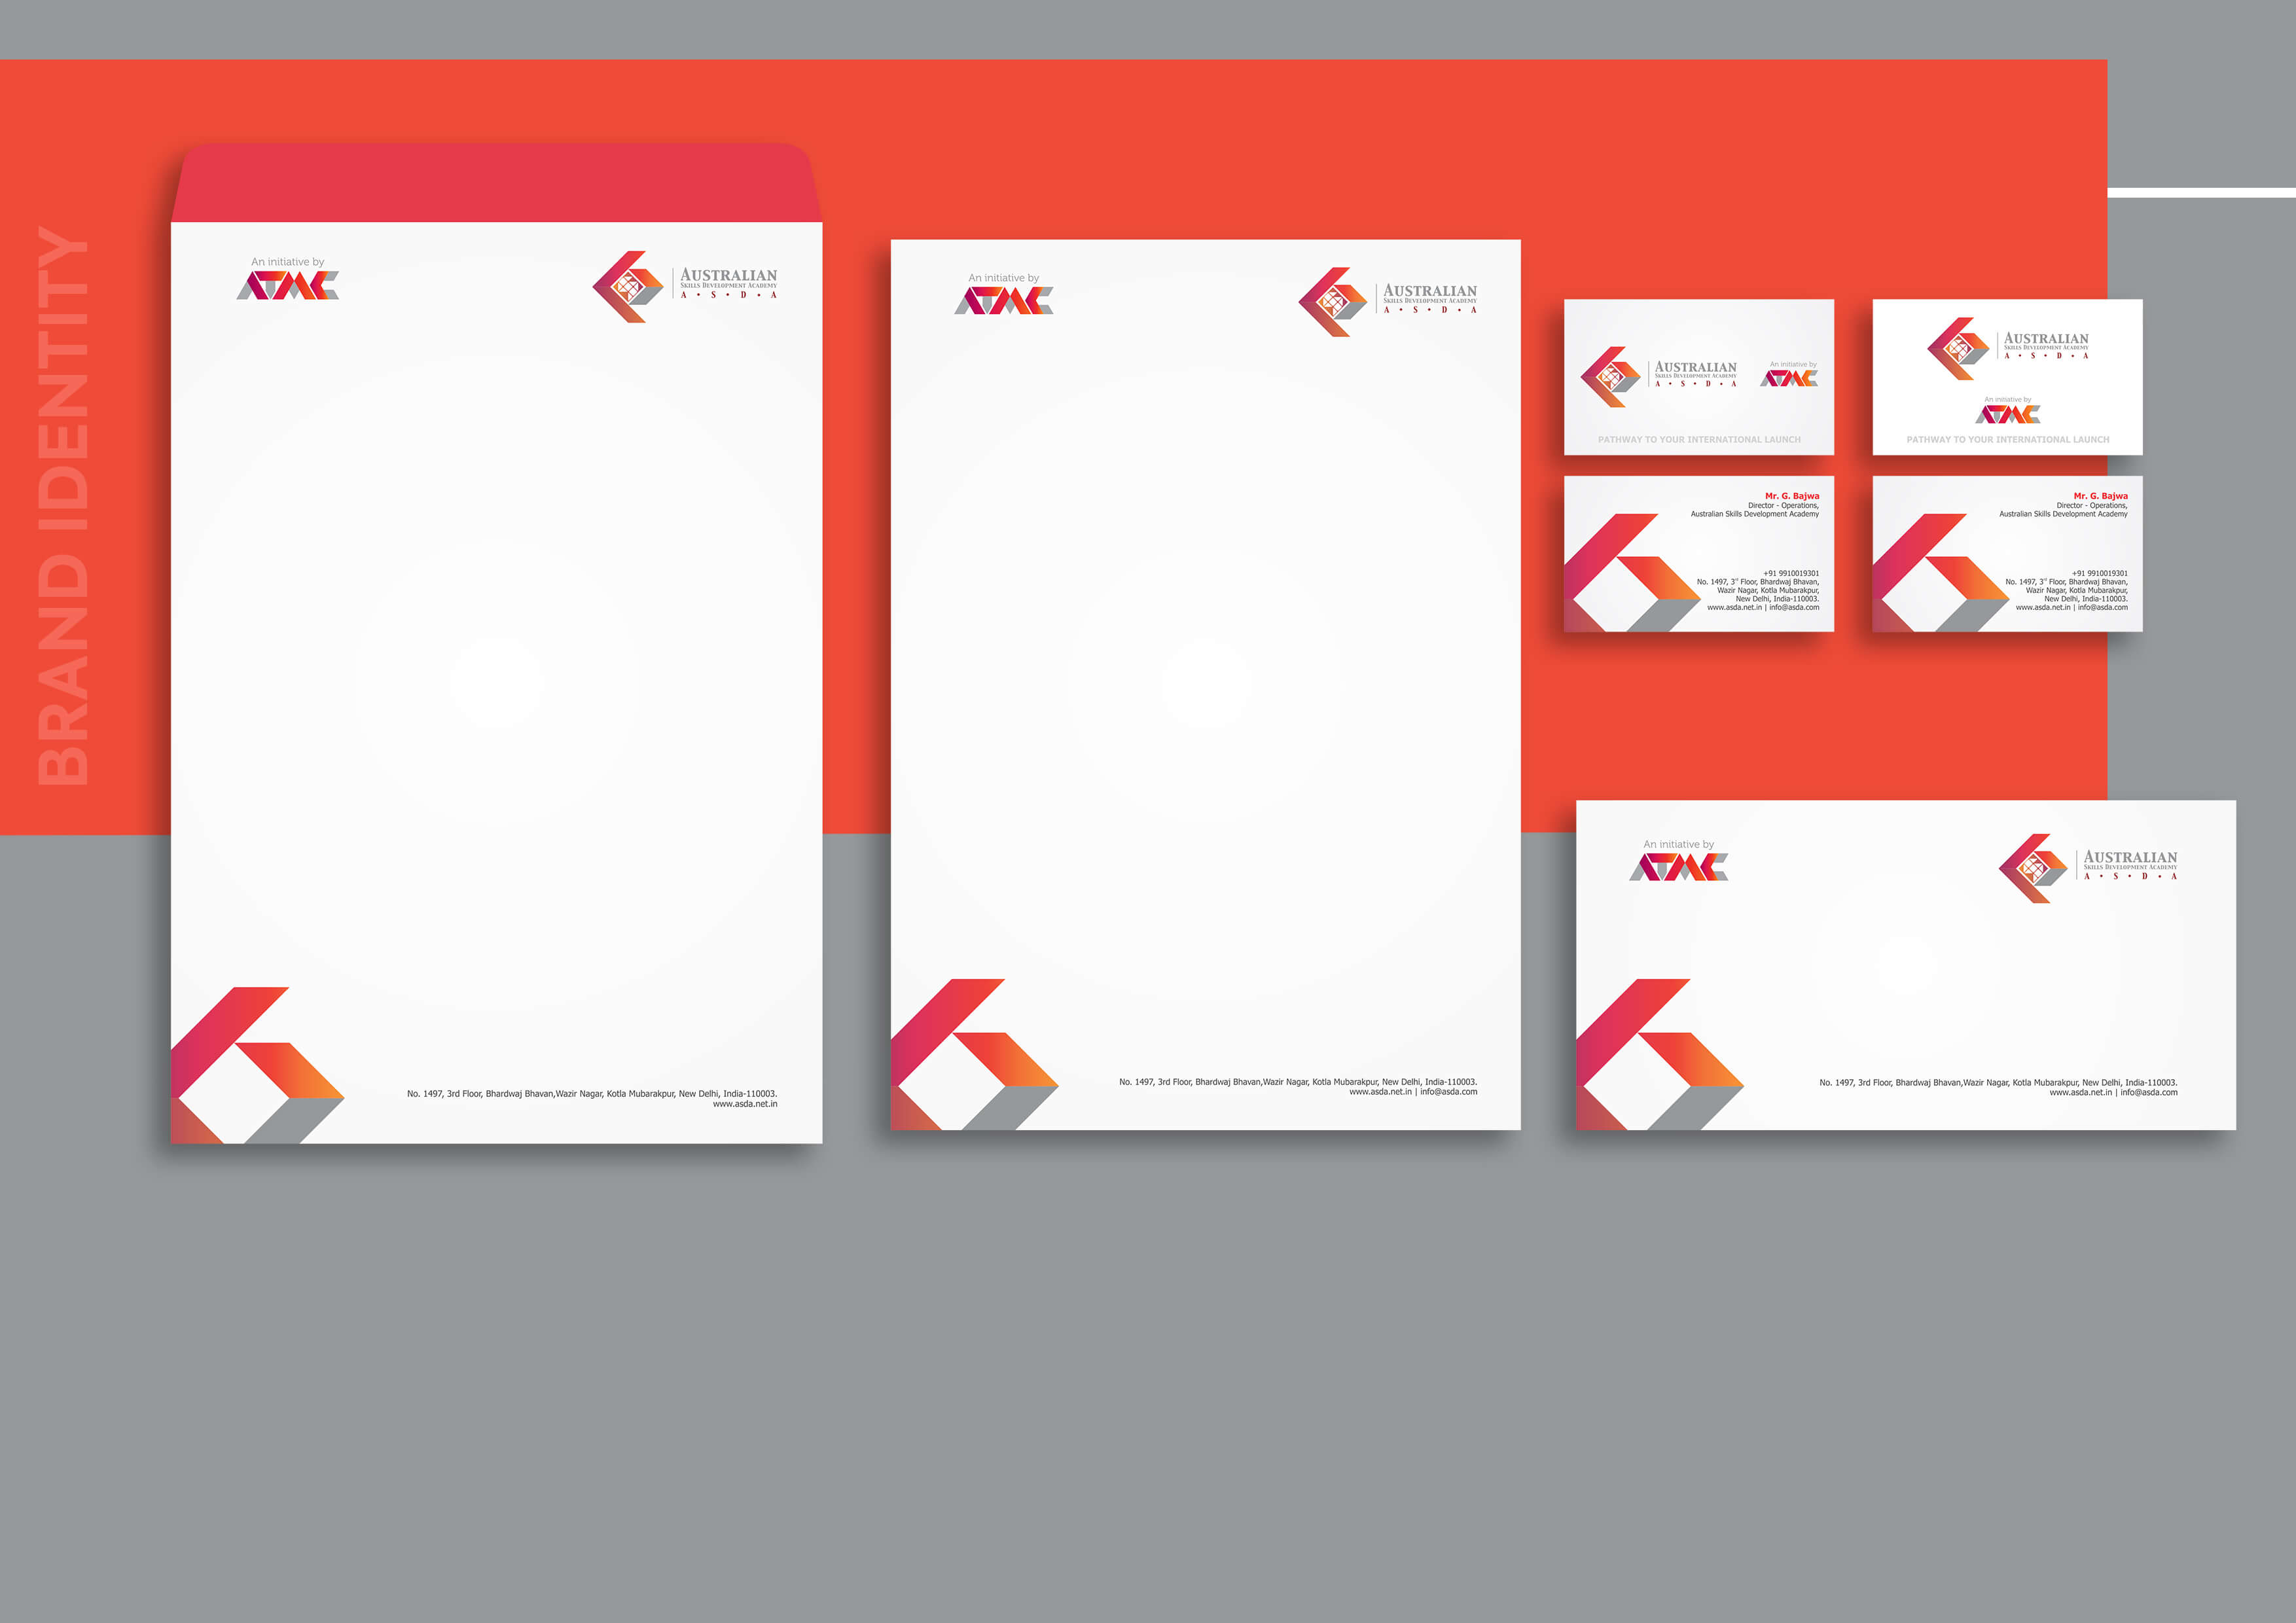 ATMC, Australian Technical & Management College, brand collateral, brands visual, hue